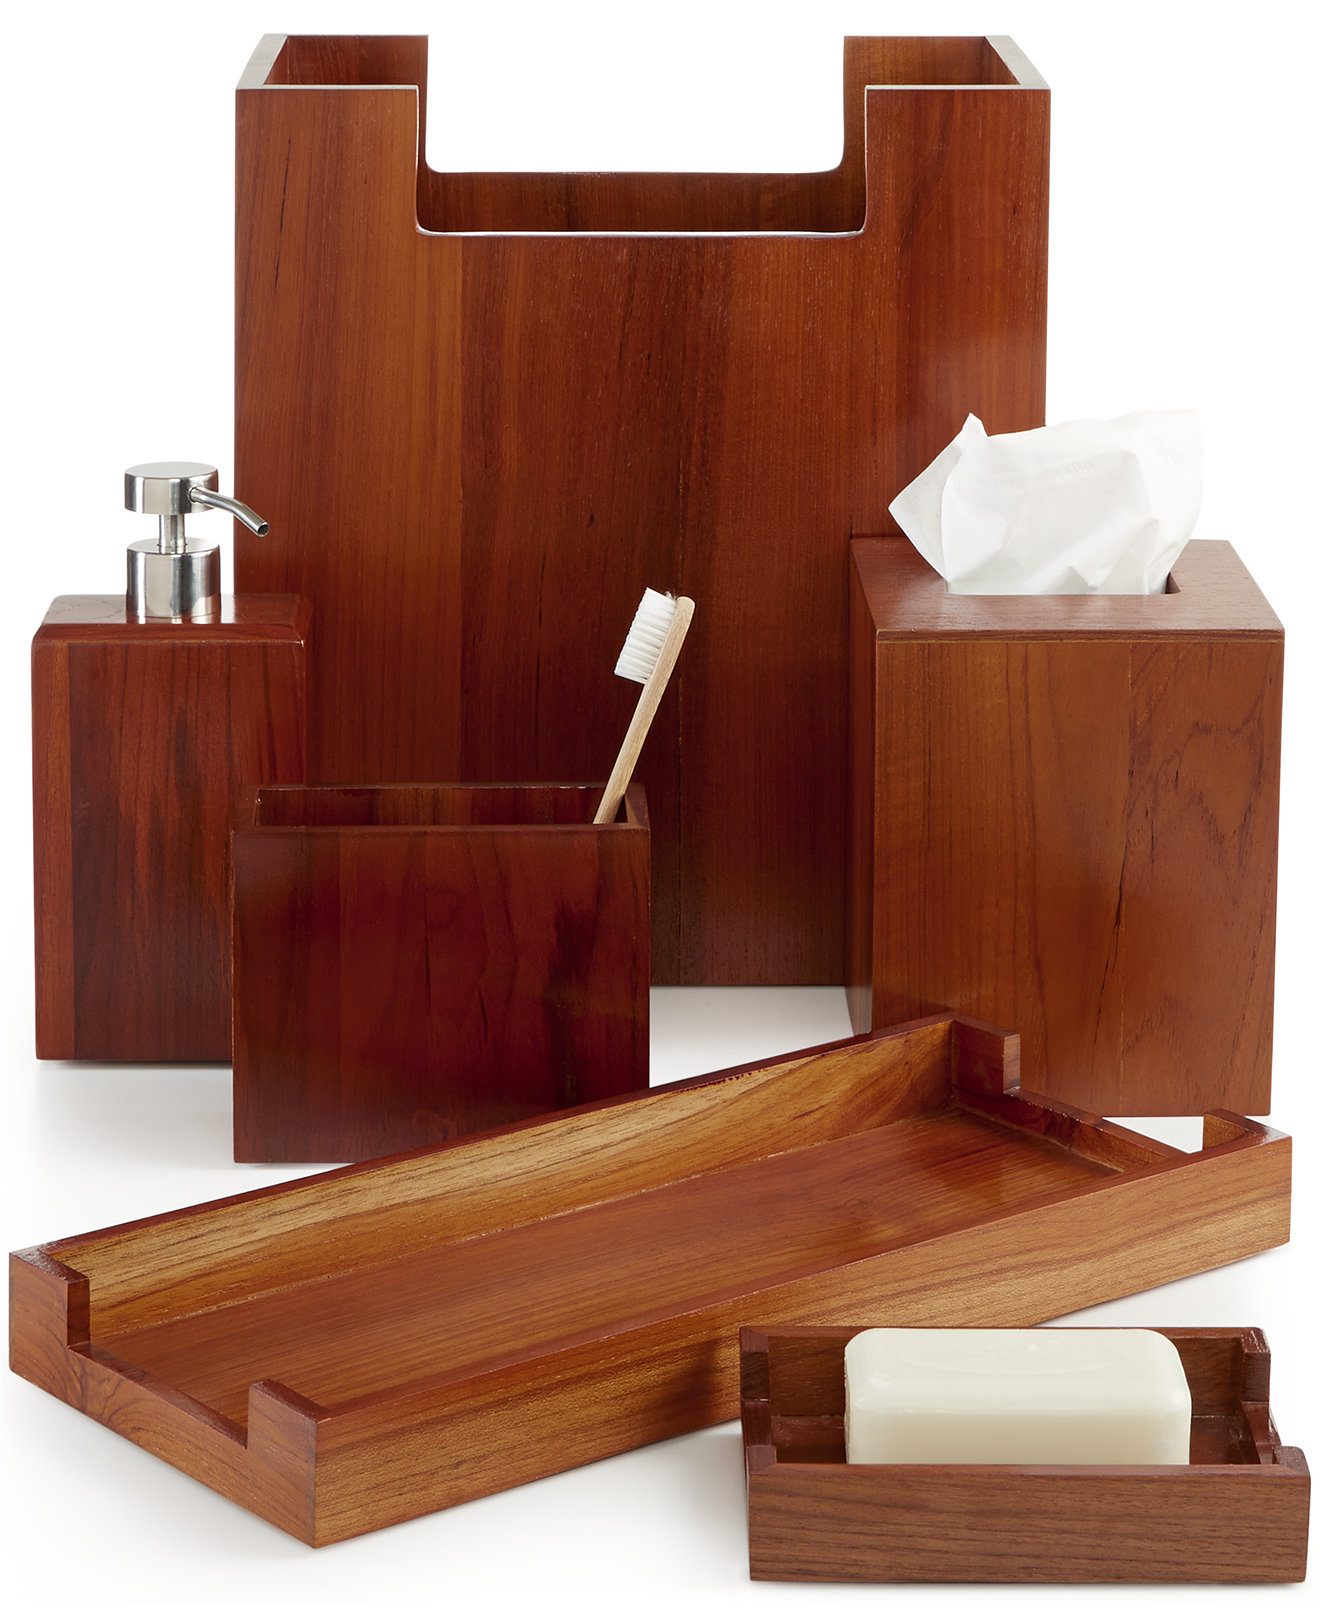 Bathroom Accessories Wood Healthydetroiter Com